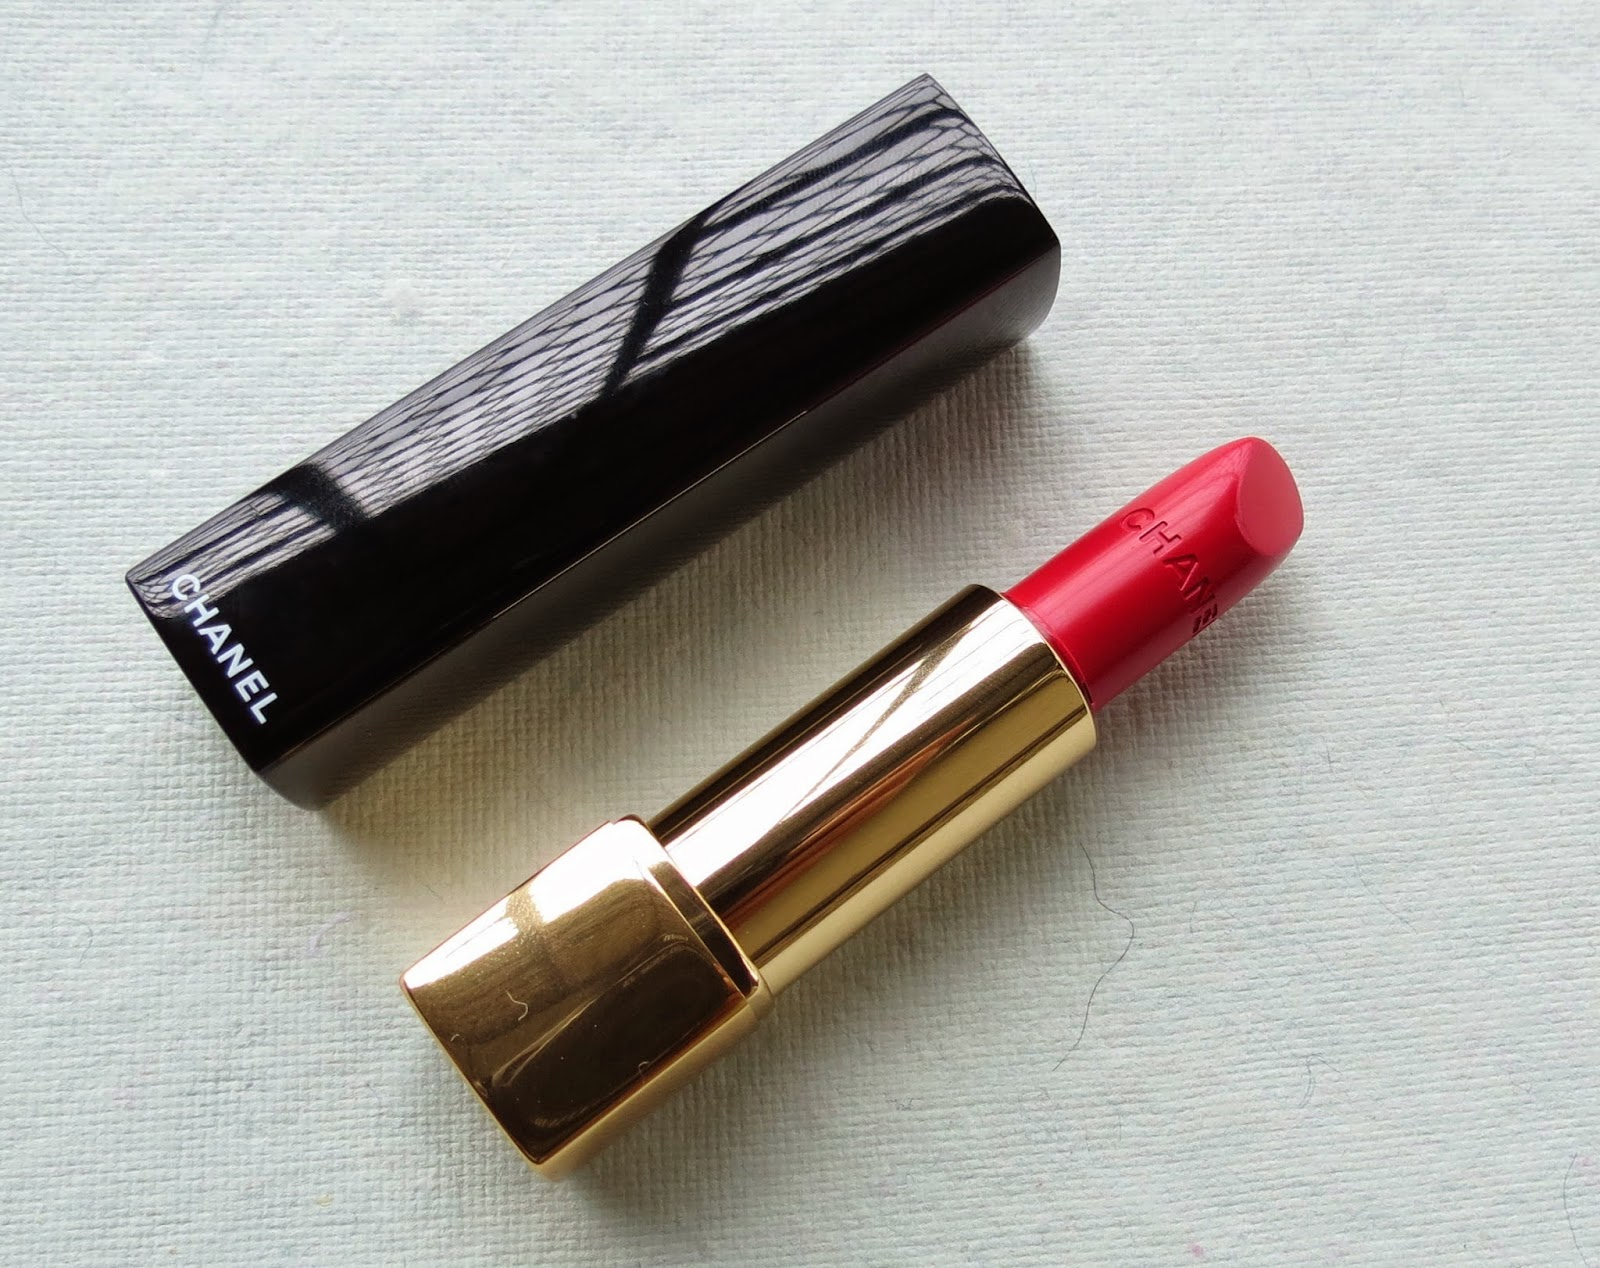 makeupbyeesha chanel rouge allure luminous intense lipstick in palpitante. Black Bedroom Furniture Sets. Home Design Ideas